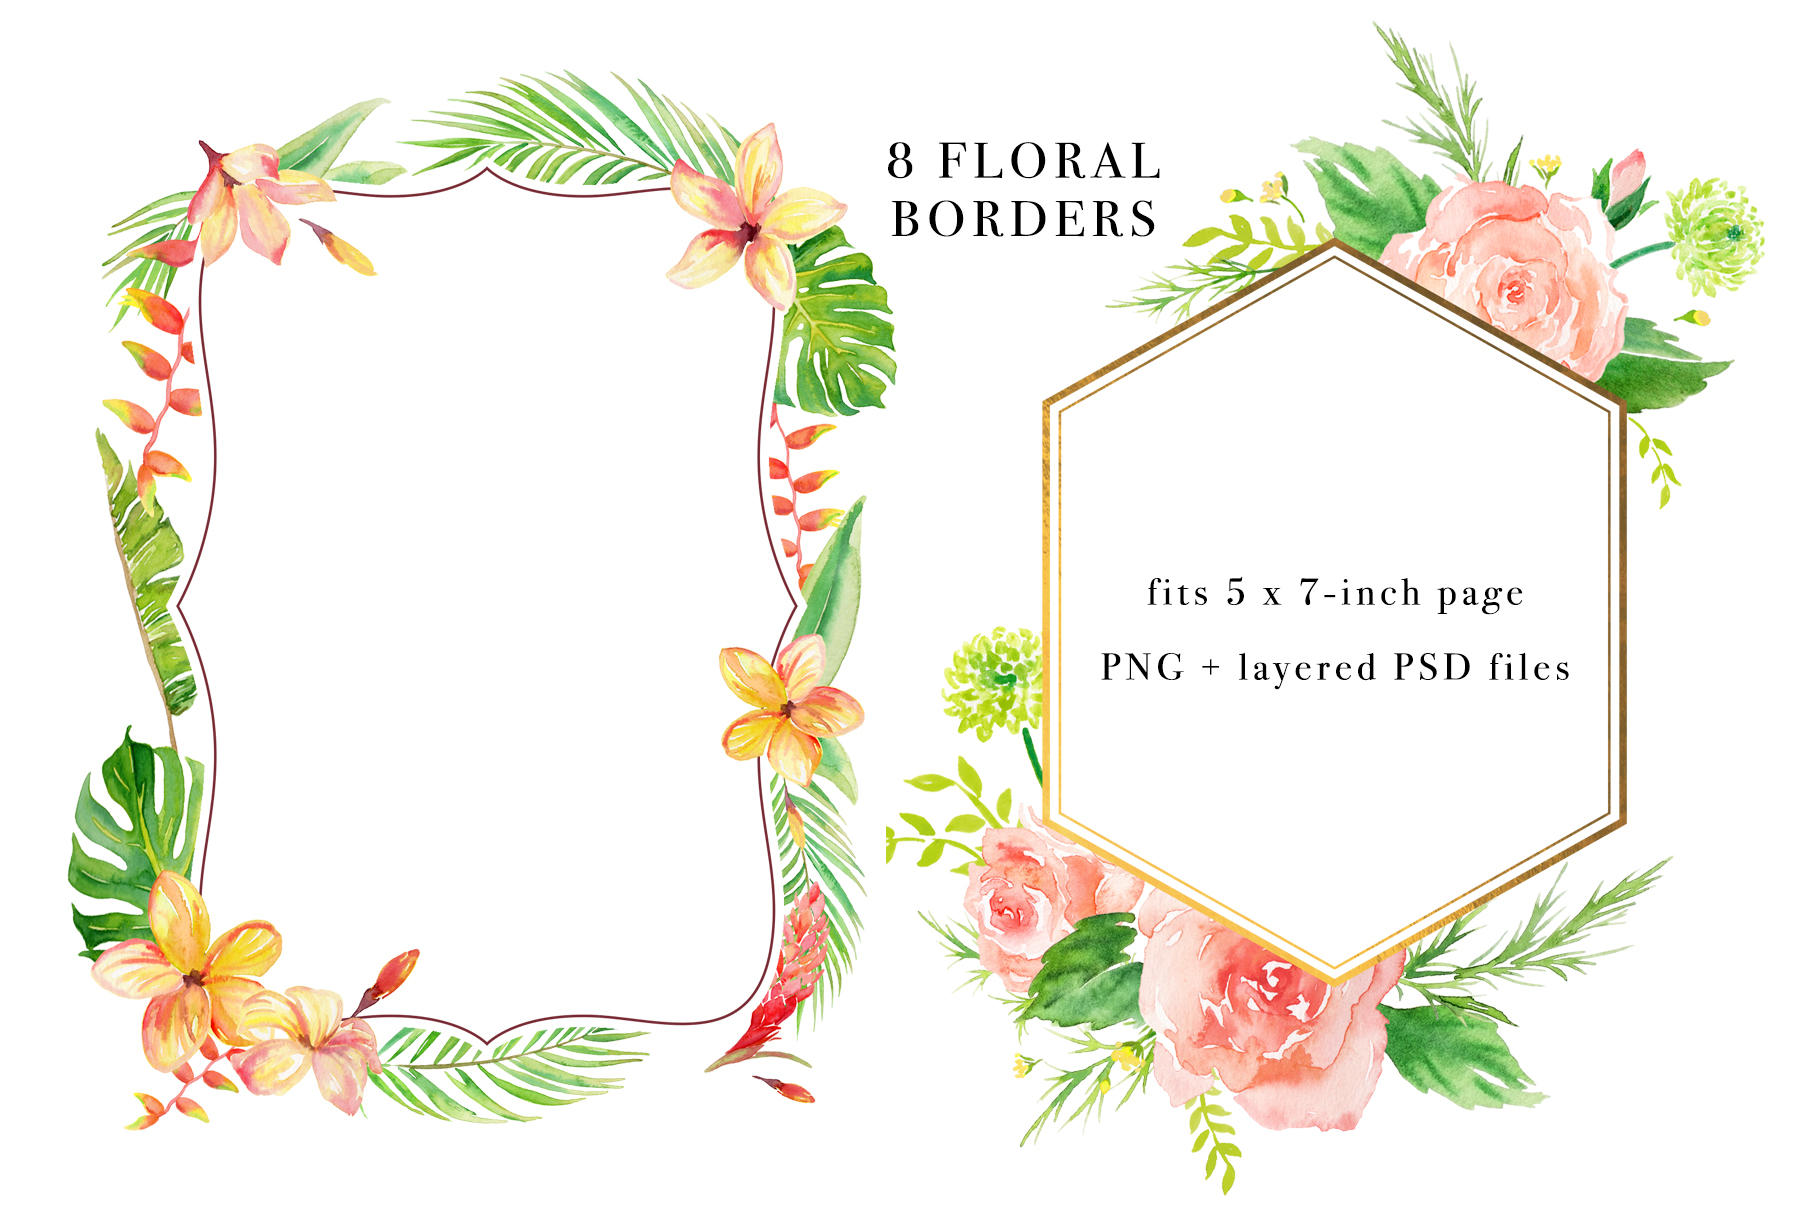 Floral Borders Watercolor Set example image 2